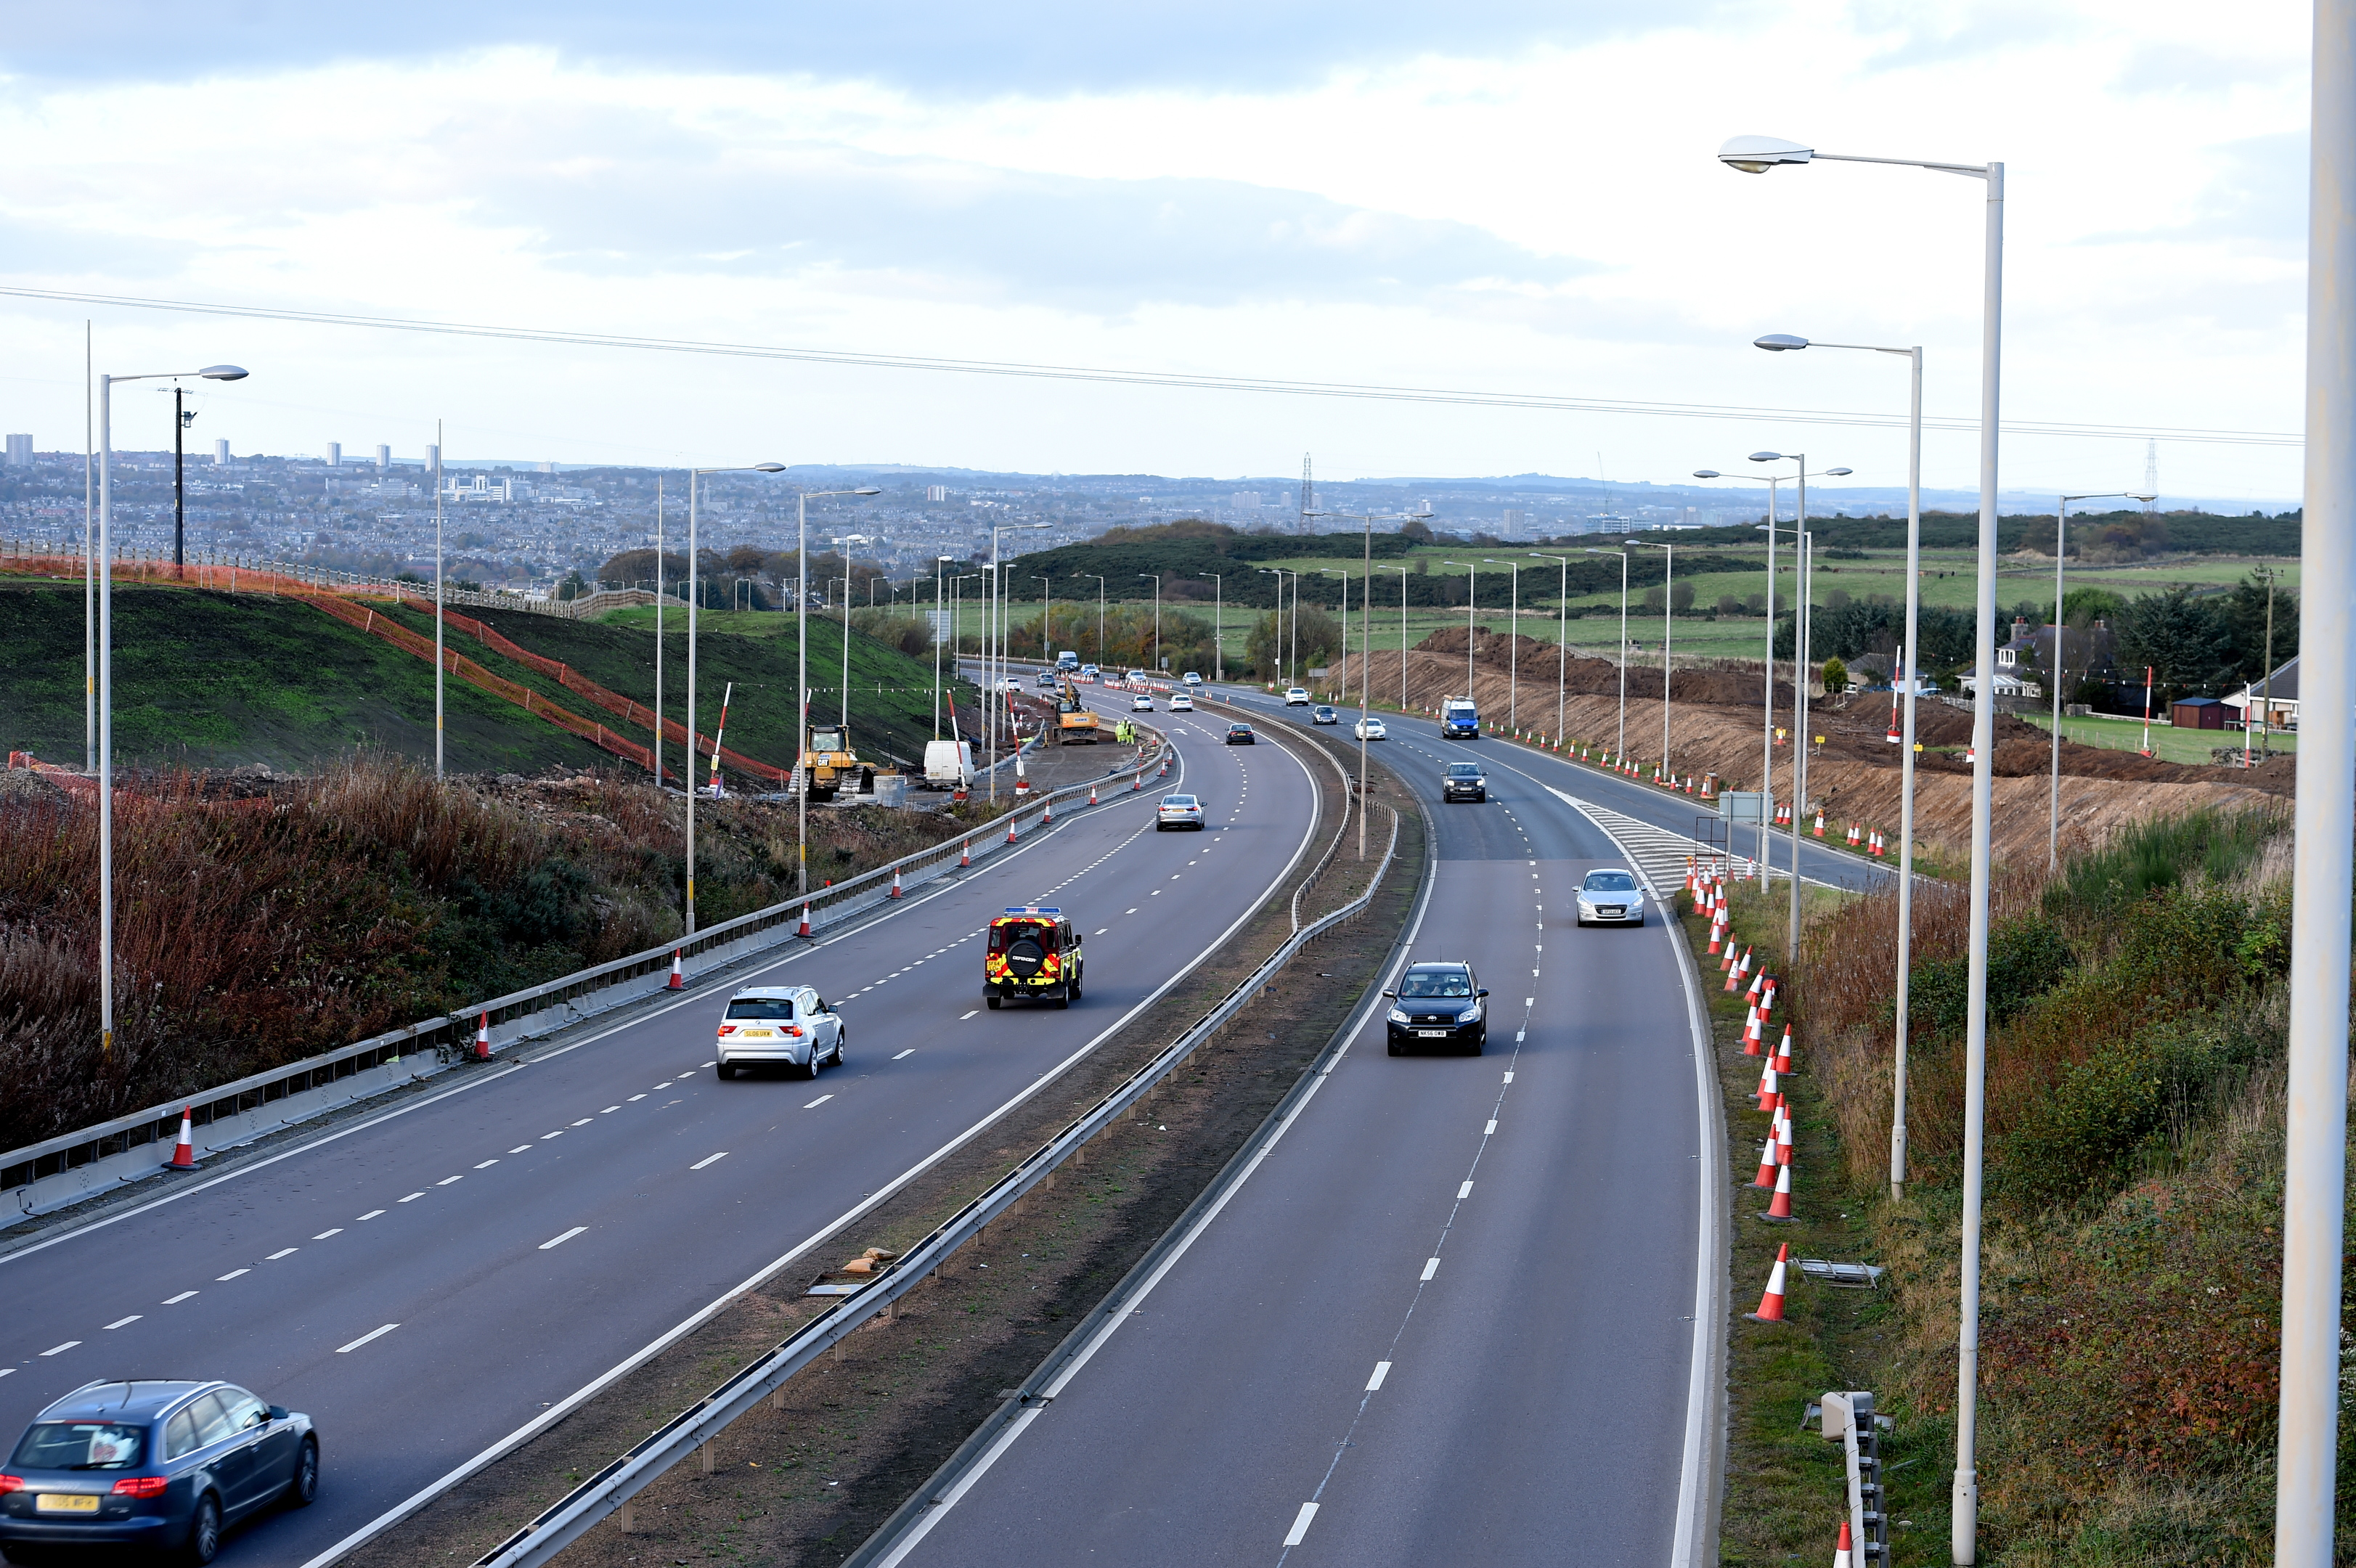 progress:  AWPR work is ongoing at the A90 by Charleston where a 50mph limit is to be imposed until next winter.